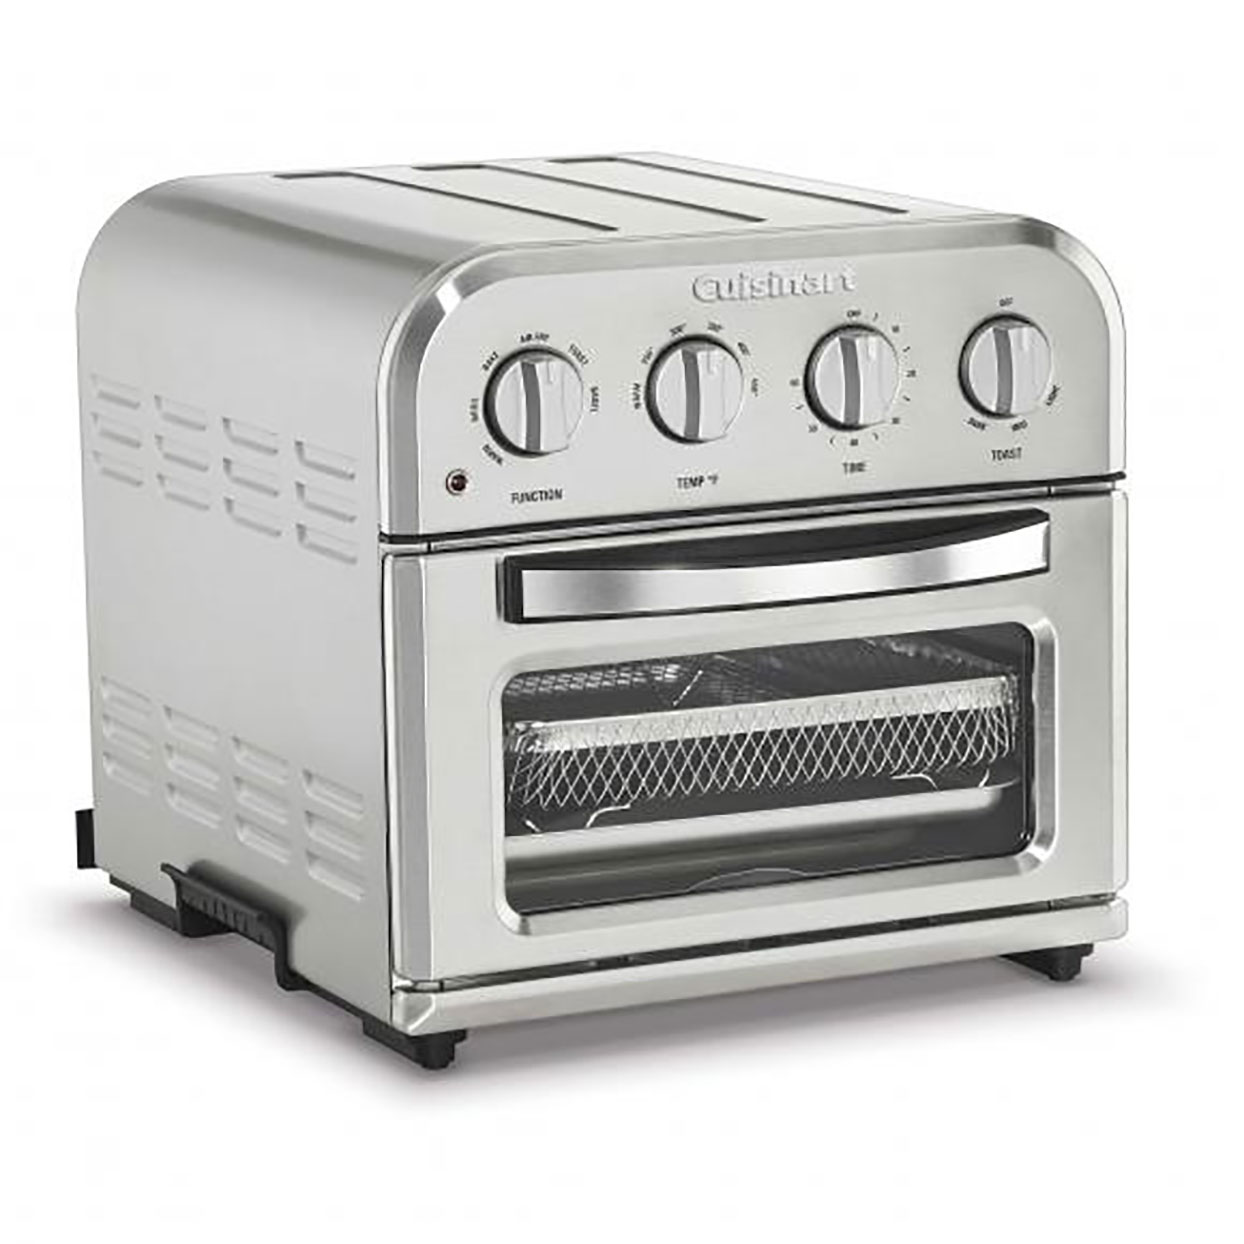 Cuisinart-Compact-AirFryer-Toaster-Oven